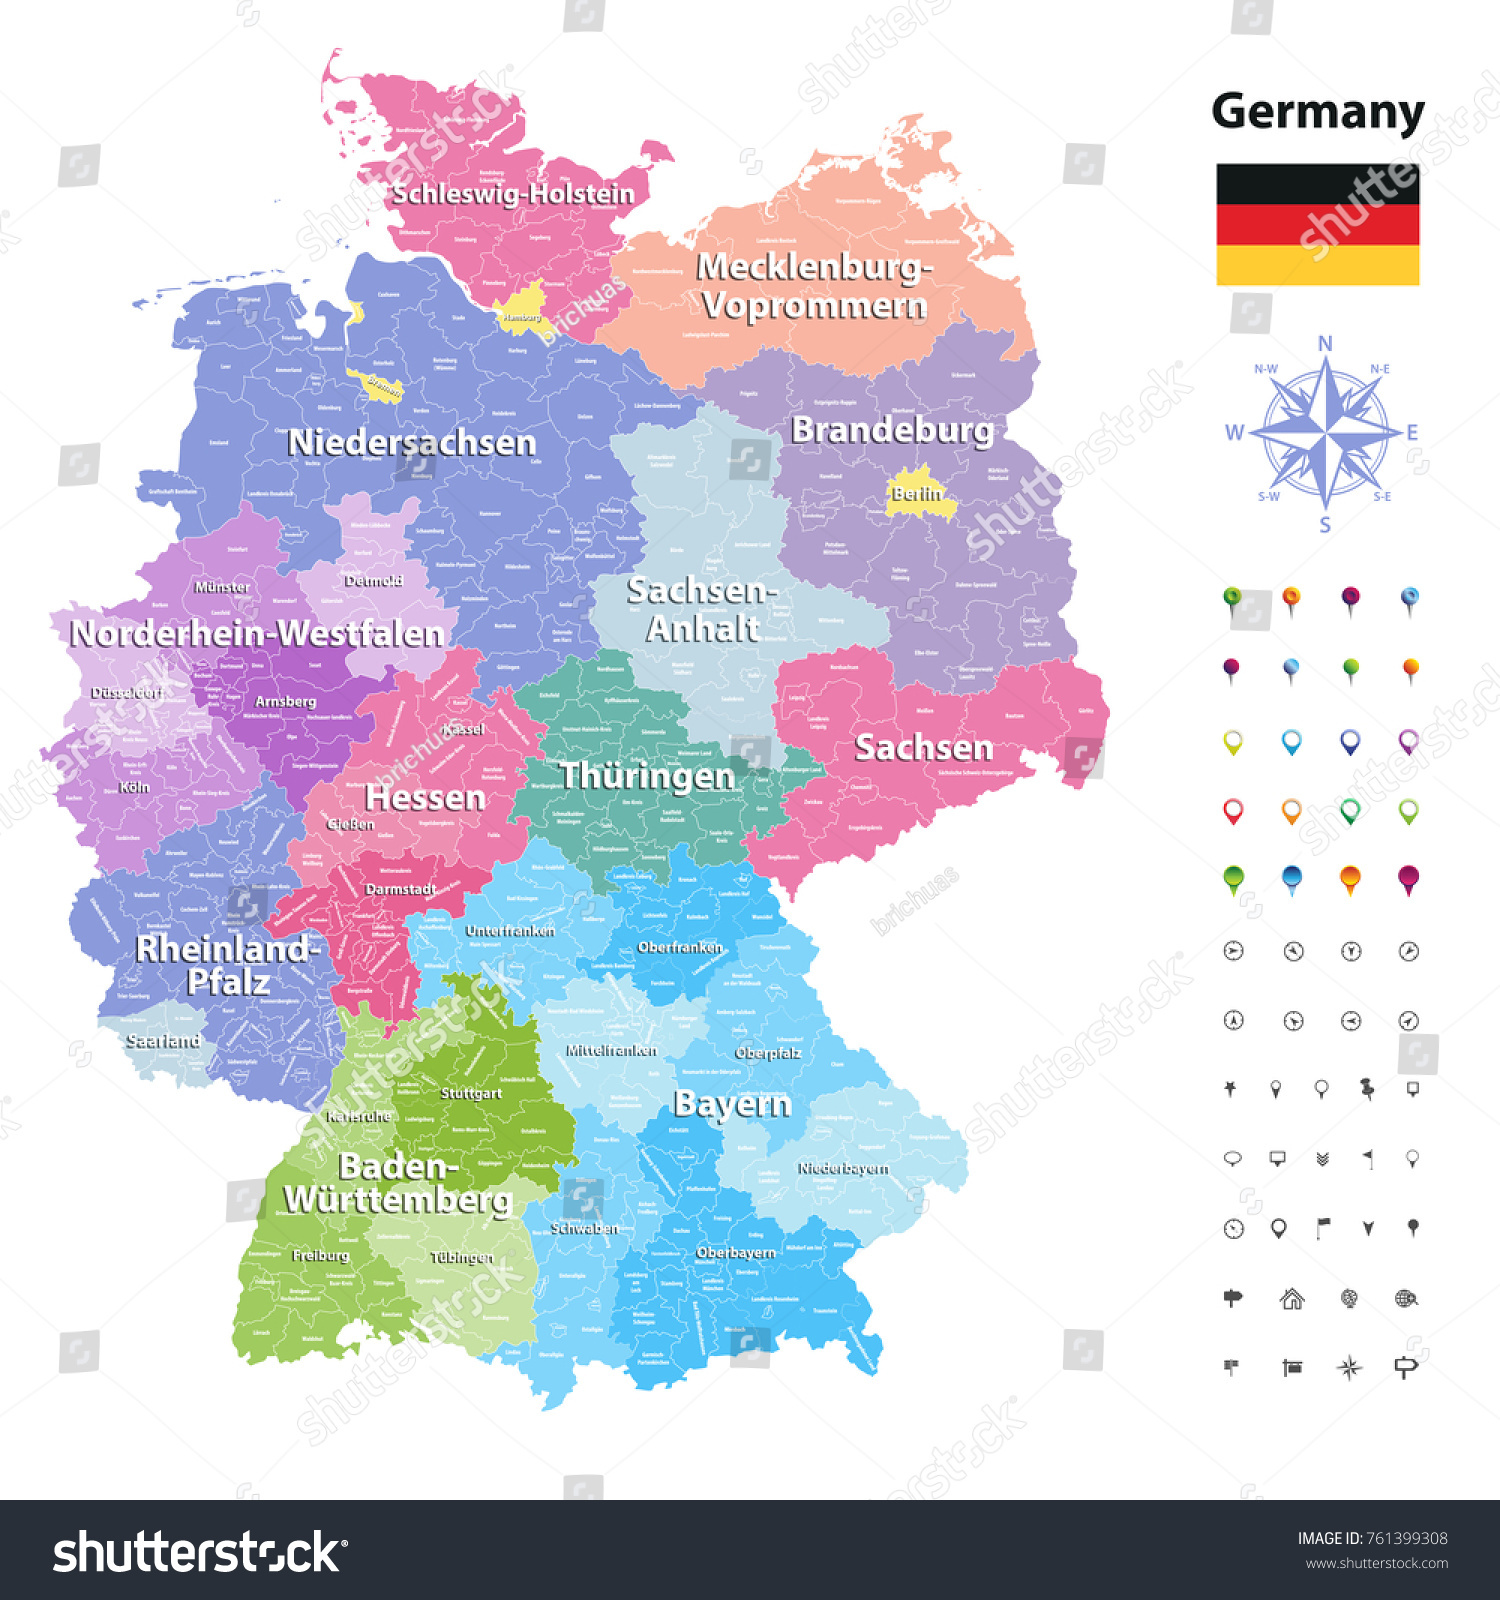 Map Of Germany With States.Germany Vector Map Colored By States Stock Vector Royalty Free